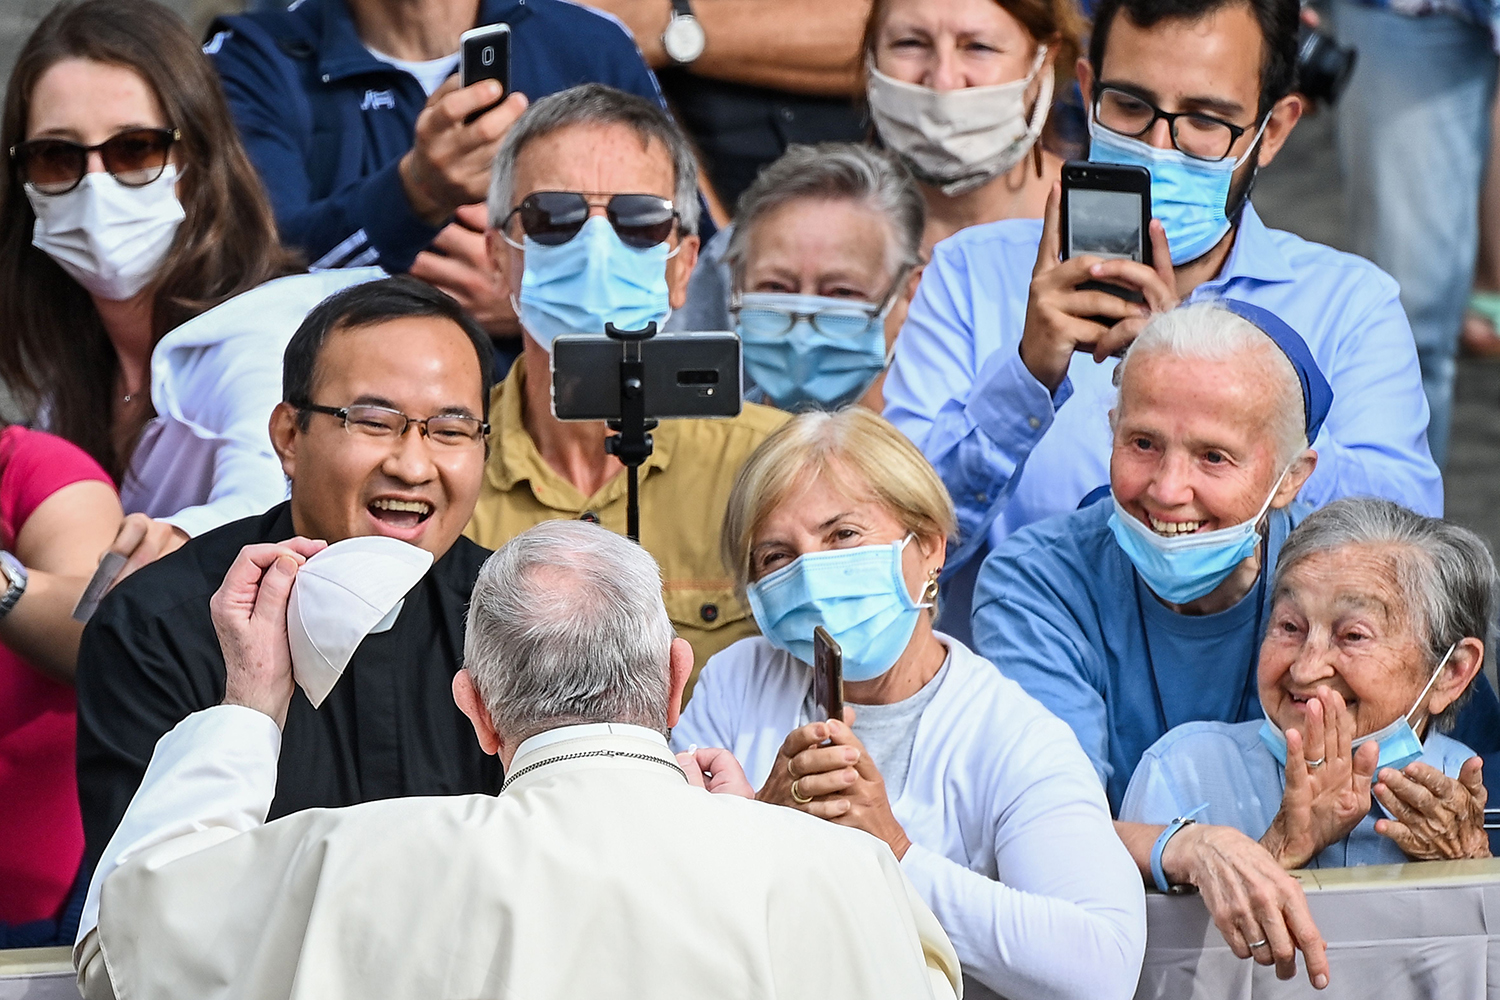 Pope Francis arrives to his first limited public weekly audience since the pandemic began at the San Damaso Courtyard in the Vatican on Sept. 2. VINCENZO PINTO/AFP via Getty Images